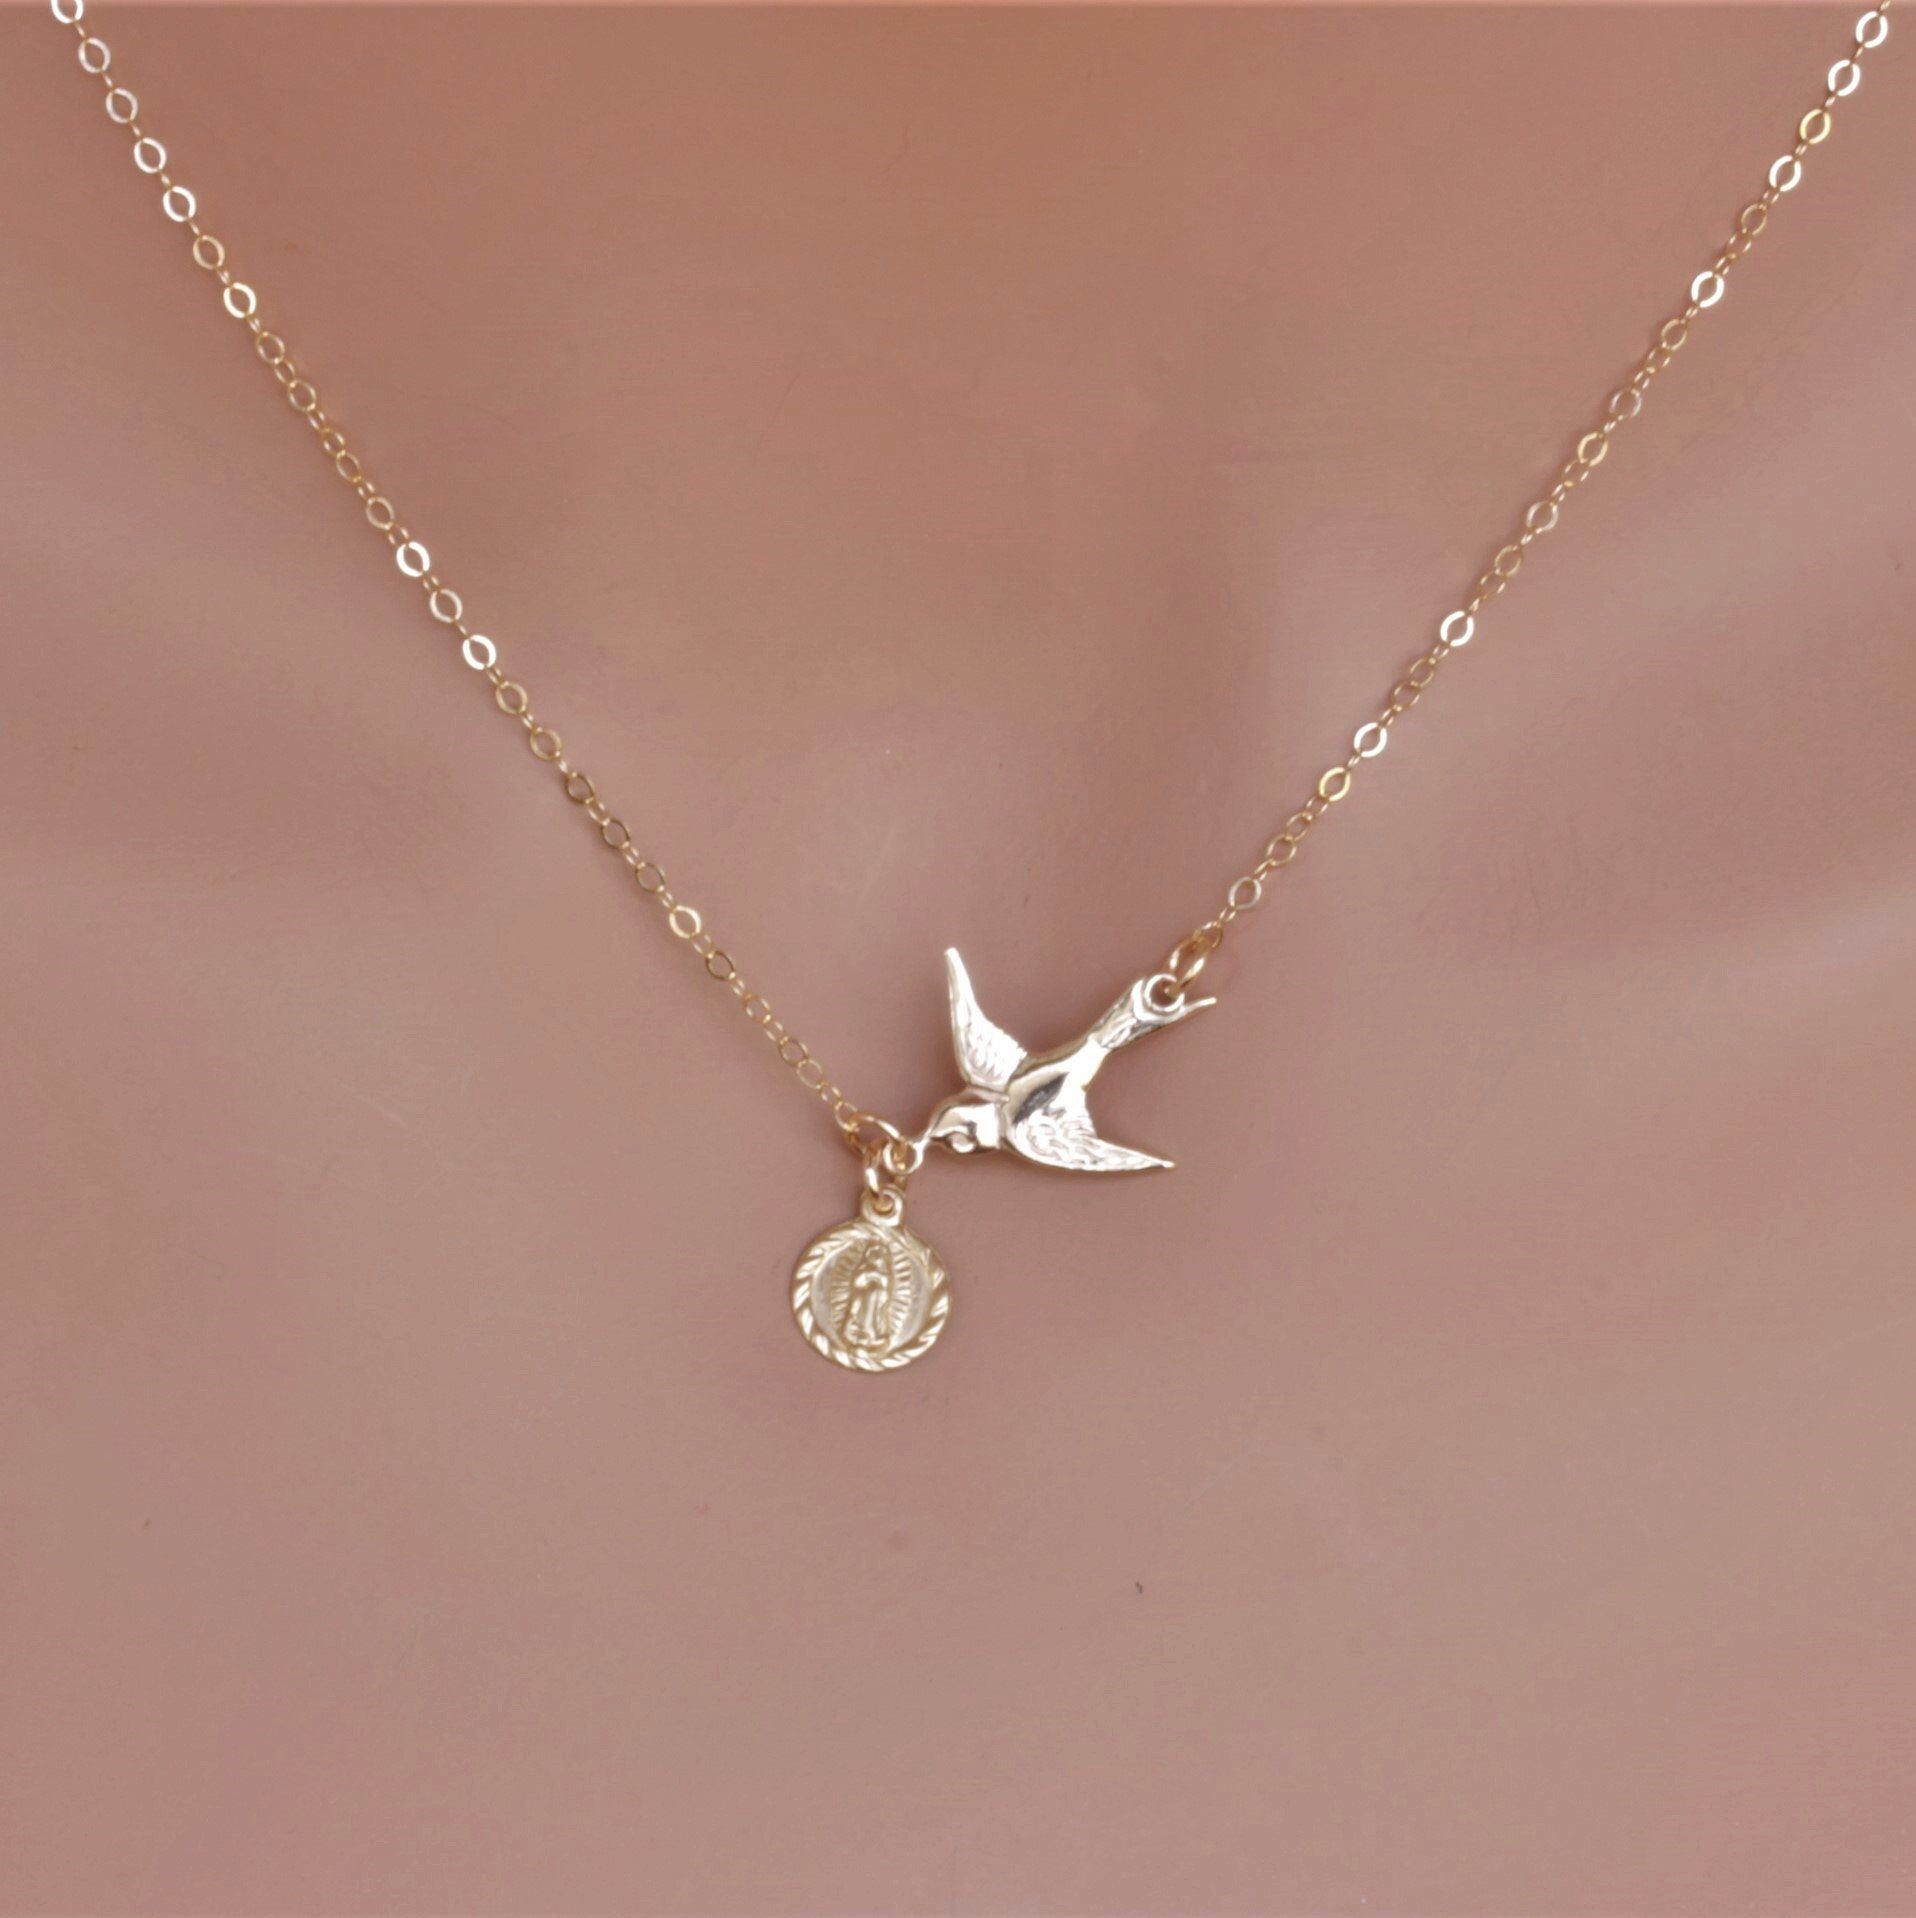 Confirmation gift girl - confirmation gifts for girls - catholic confirmation gift - confirmation sponsor gift - confirmation necklace